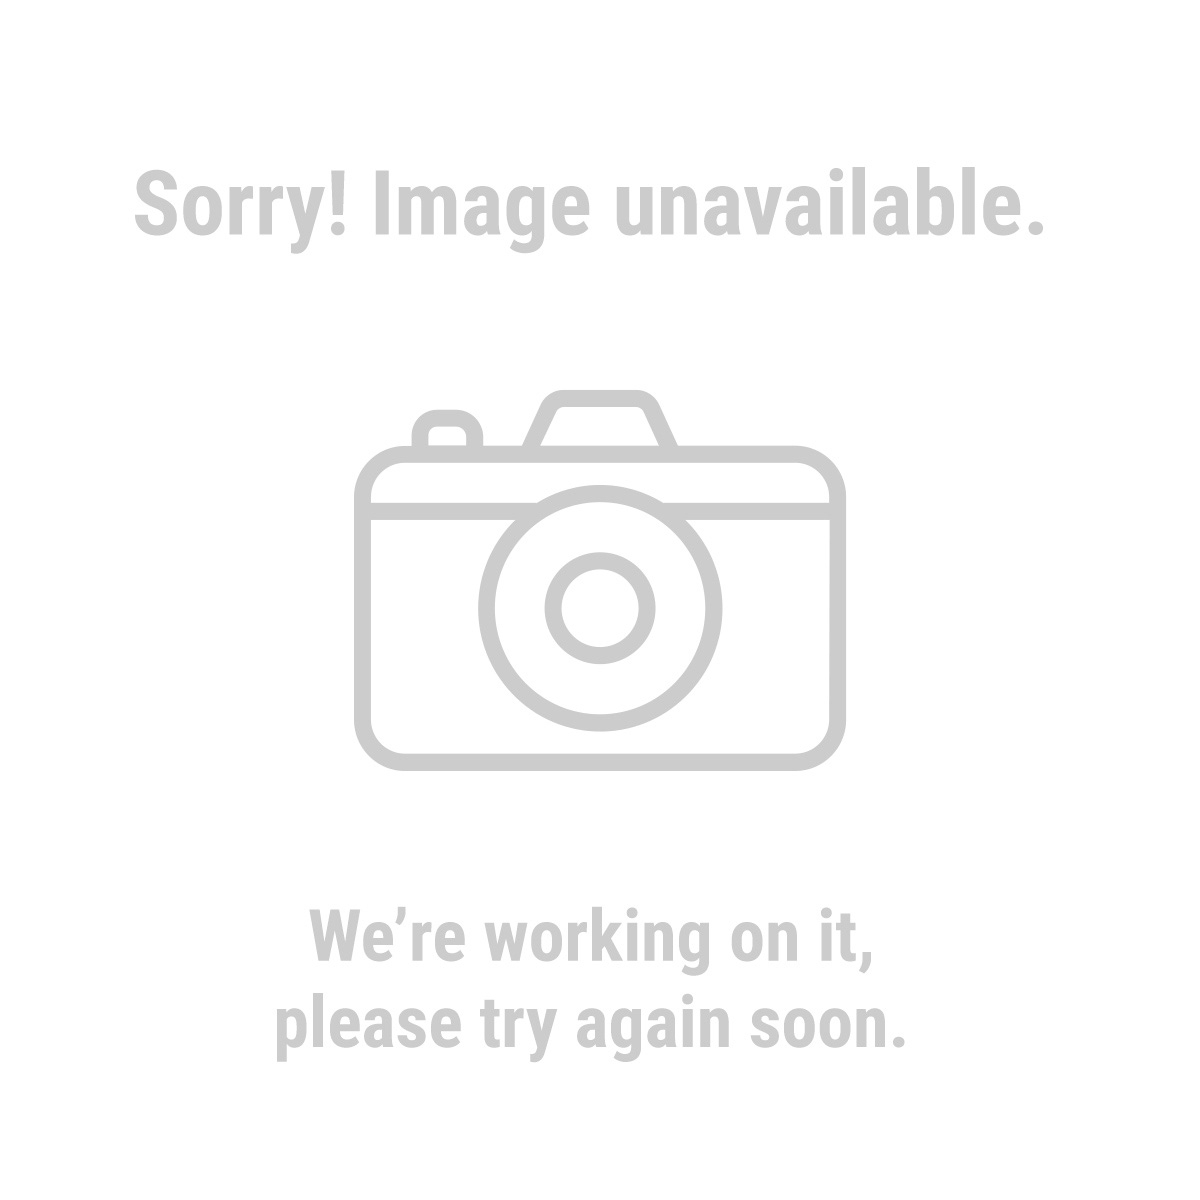 Cen-Tech 38391 3-in-1 Jump Starter and Power Supply